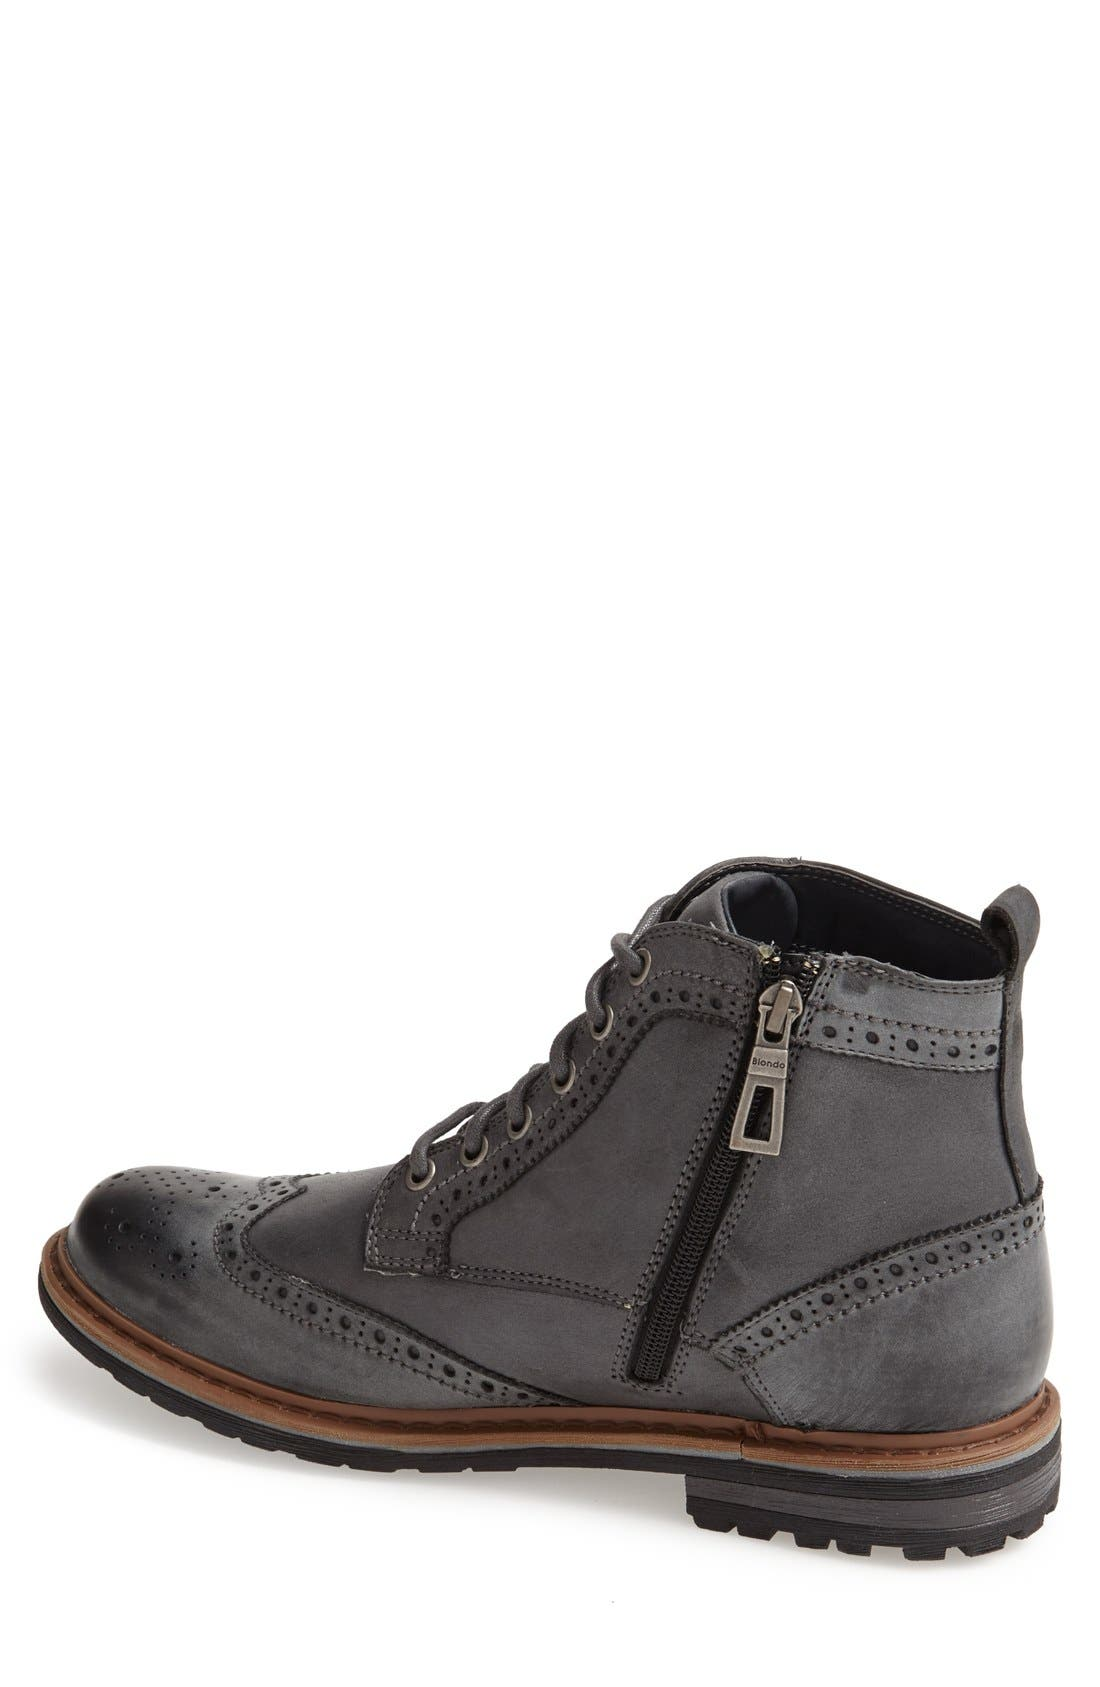 'Damien' Waterproof Wingtip Boot,                             Alternate thumbnail 2, color,